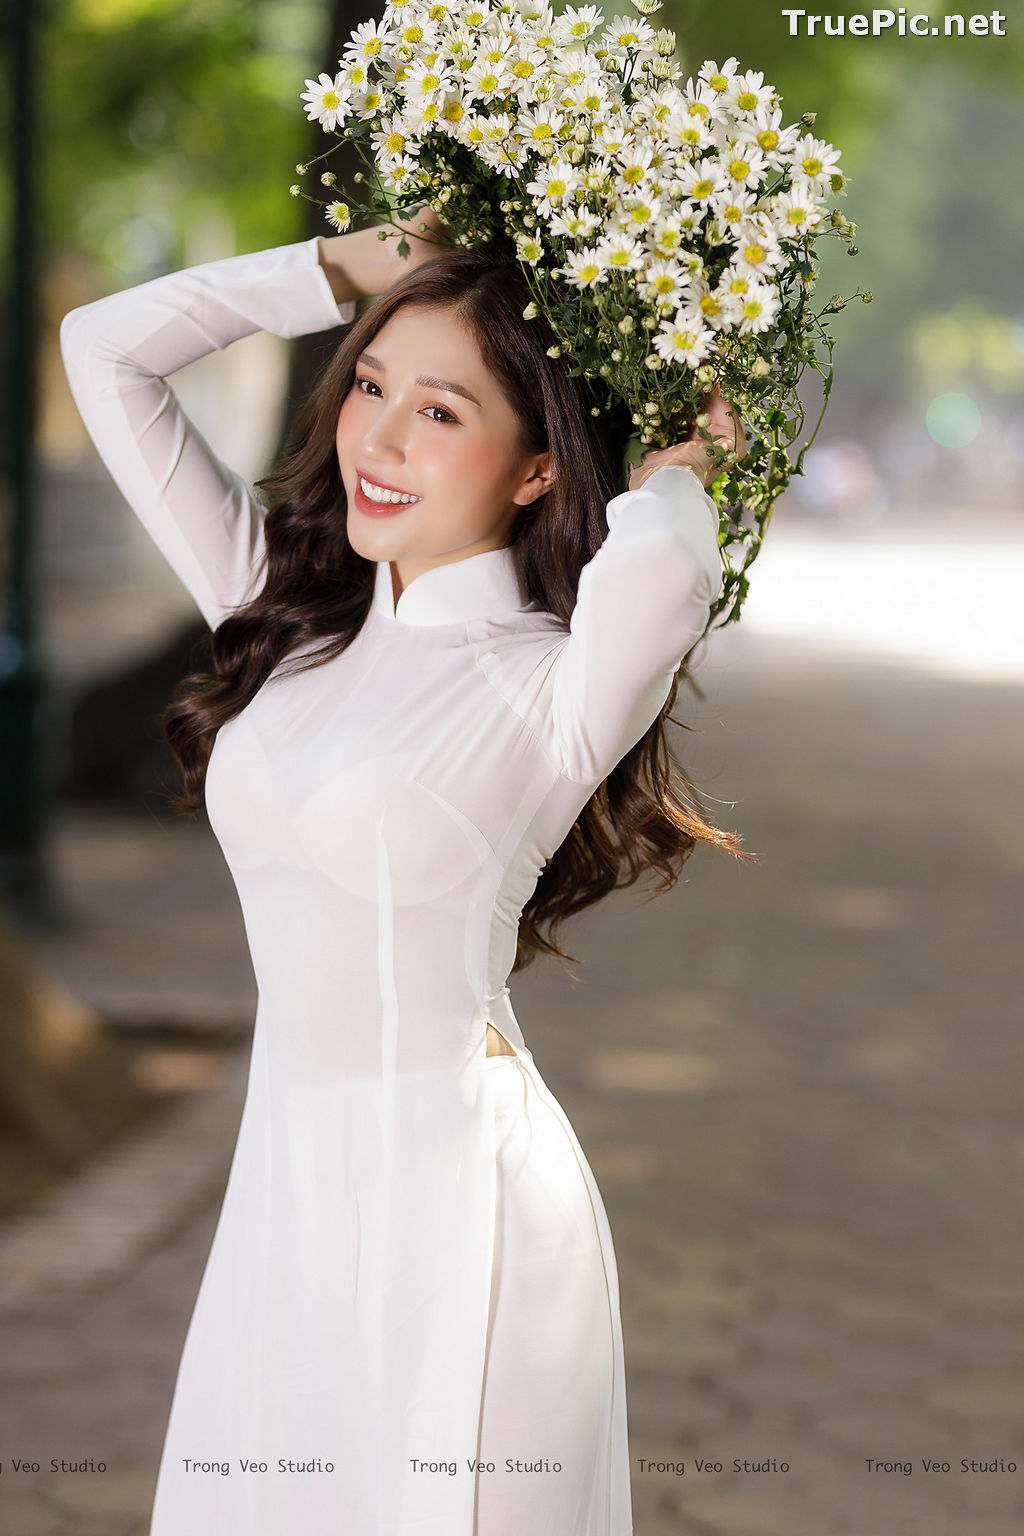 Image The Beauty of Vietnamese Girls with Traditional Dress (Ao Dai) #1 - TruePic.net - Picture-10